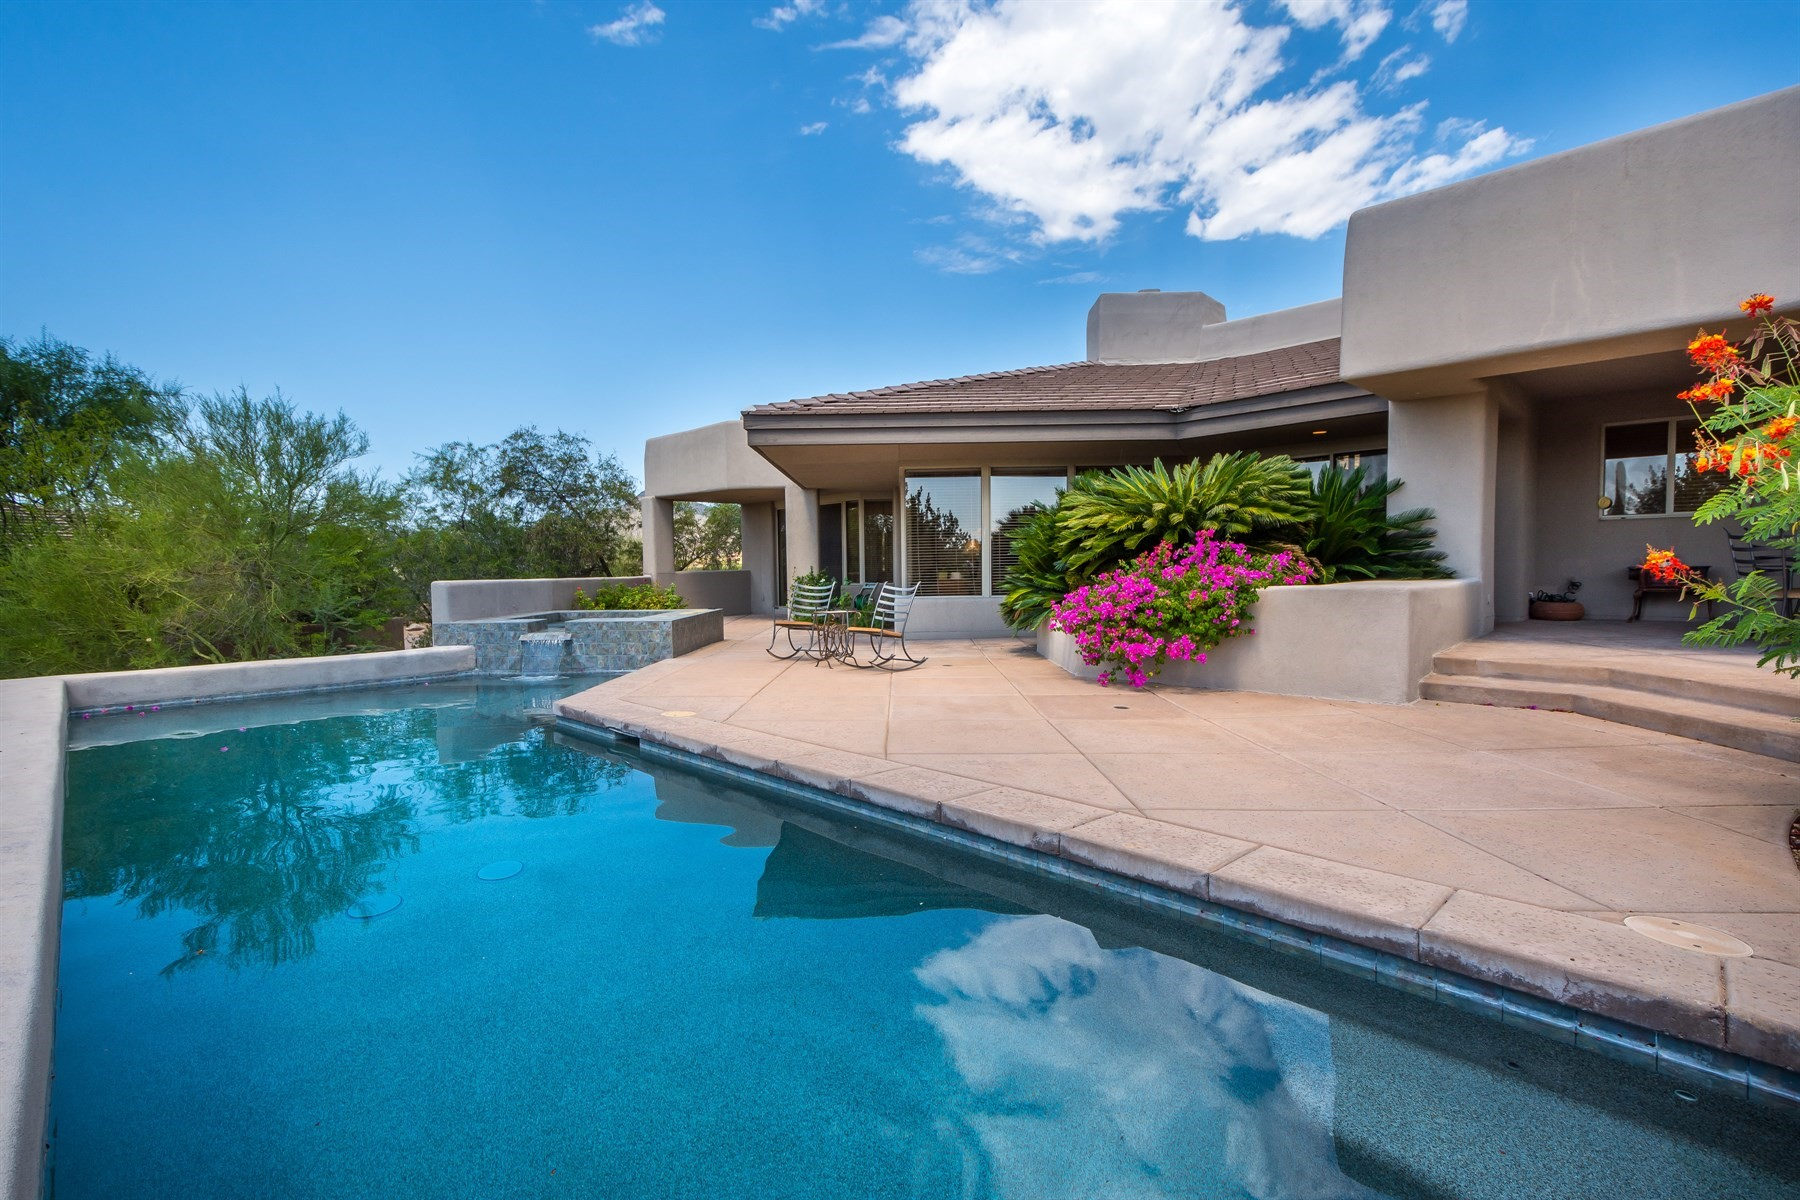 Single Family Home for Sale at Beautiful Desert Mountain home in the Village of Cochise Ridge 41405 N 106th St, Scottsdale, Arizona, 85262 United States